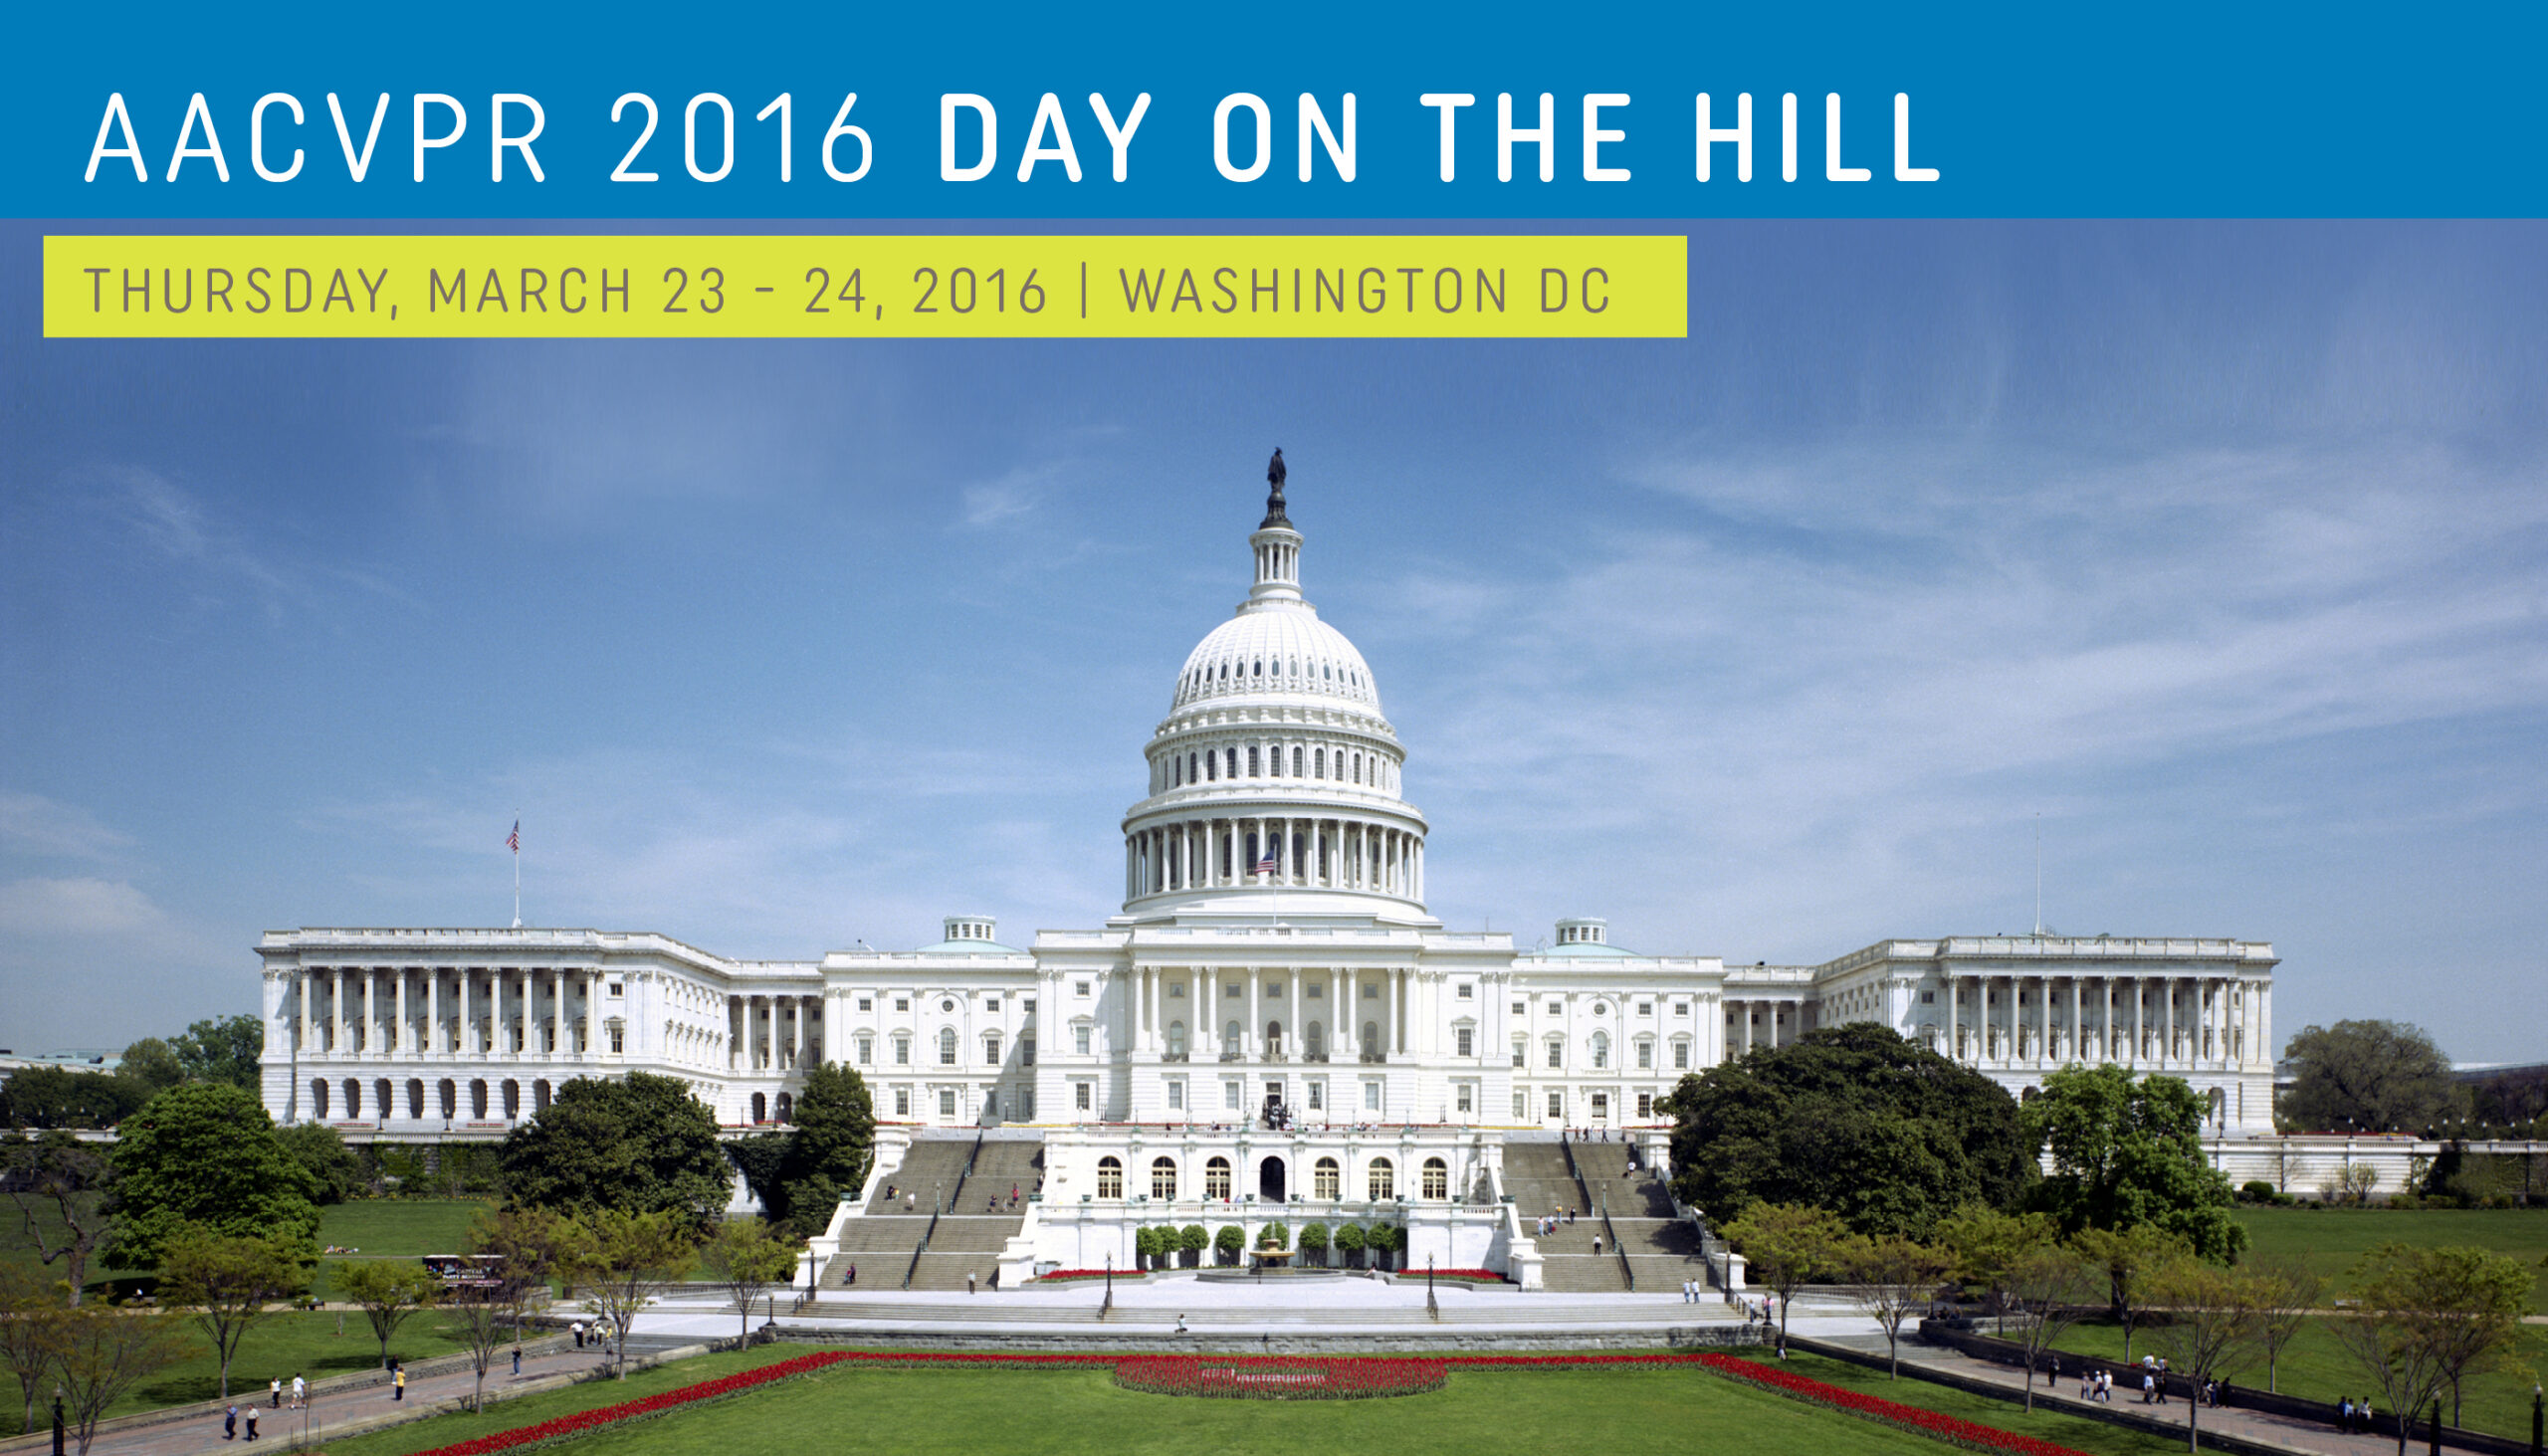 AACVPR Day on the Hill